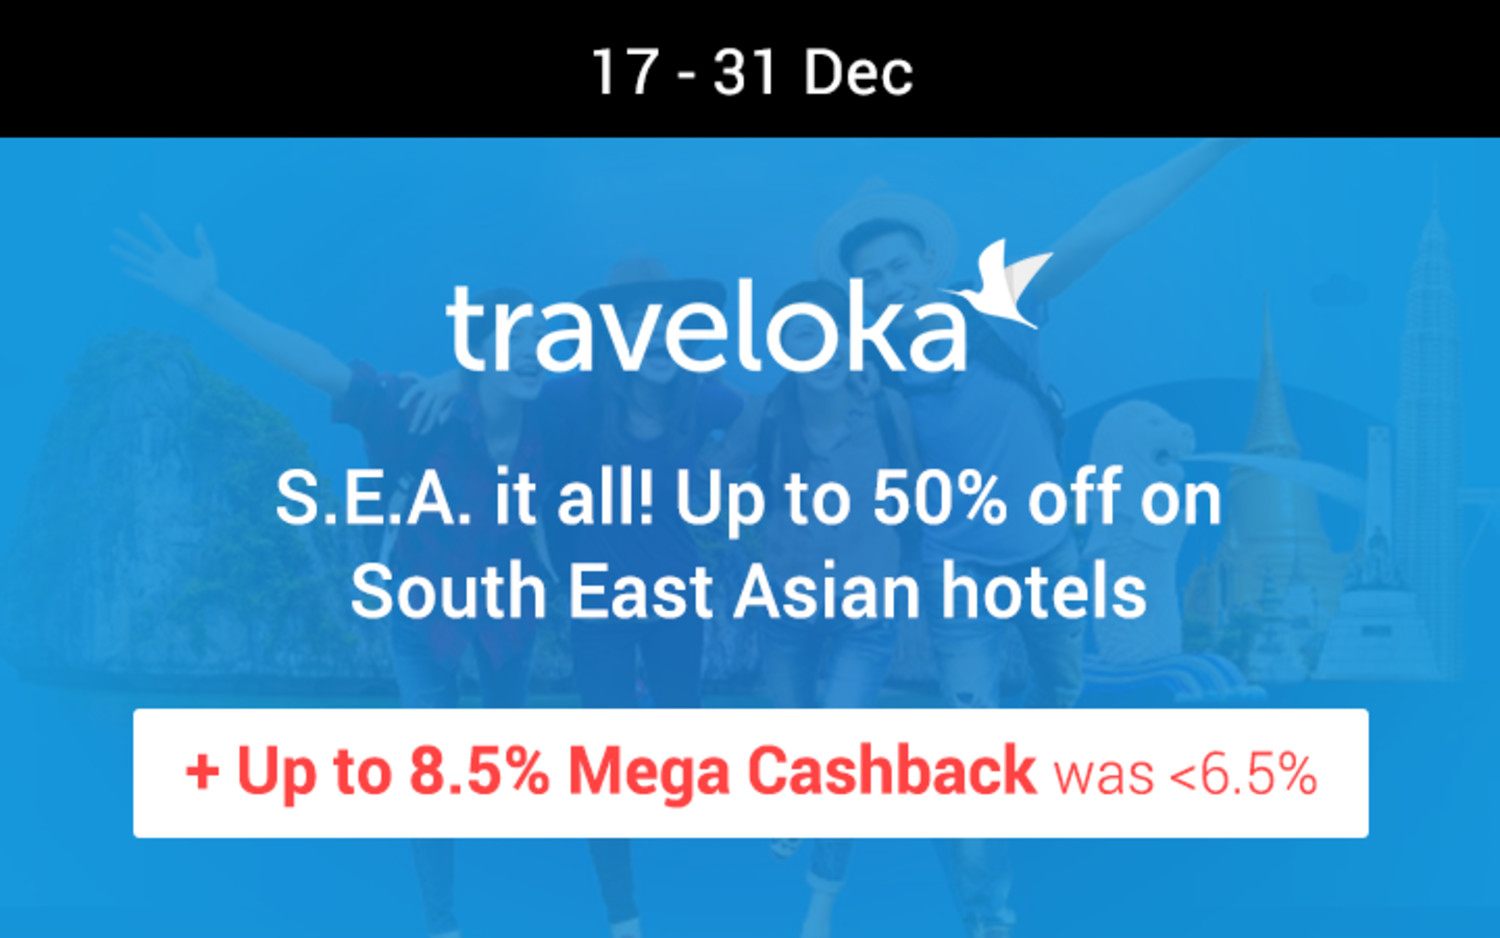 Traveloka S.E.A. it all! Up to 50% off on South East Asian hotels + Up to 8.5% Mega Cashback (was <6.5%)